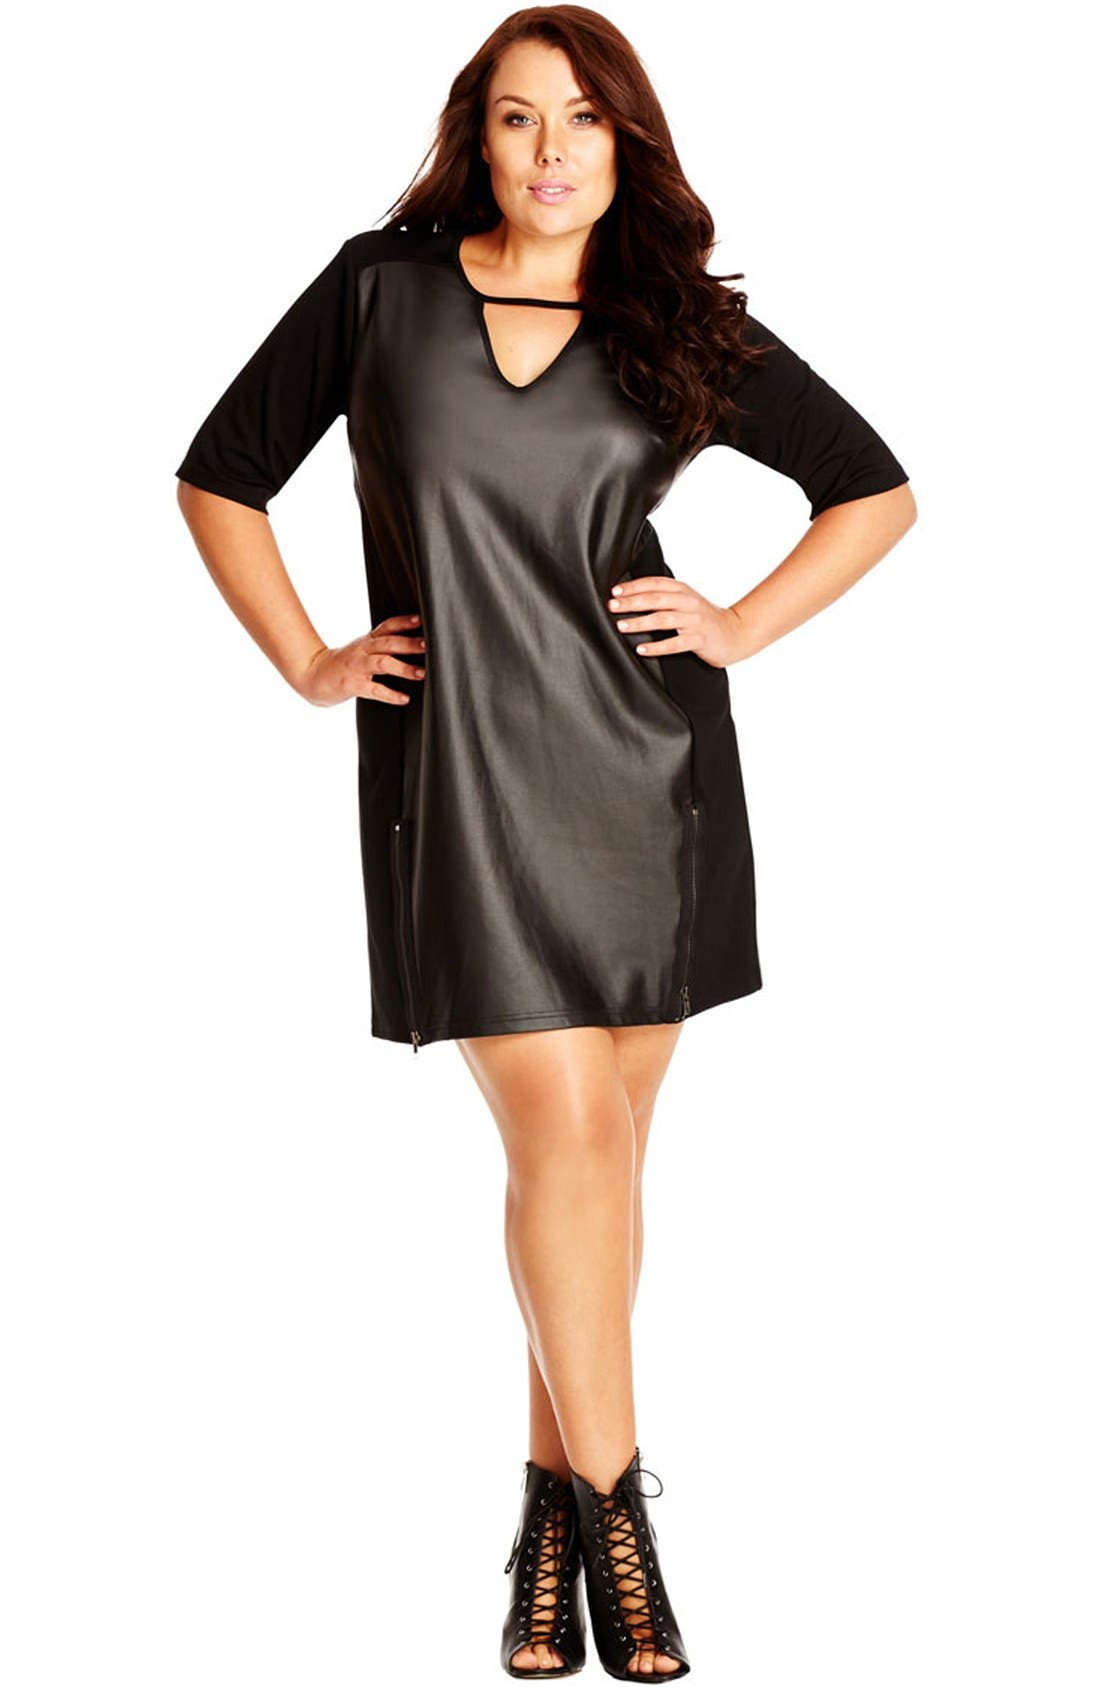 Alternate Image 1 Selected - City Chic Faux Leather Front Shift Dress (Plus Size)